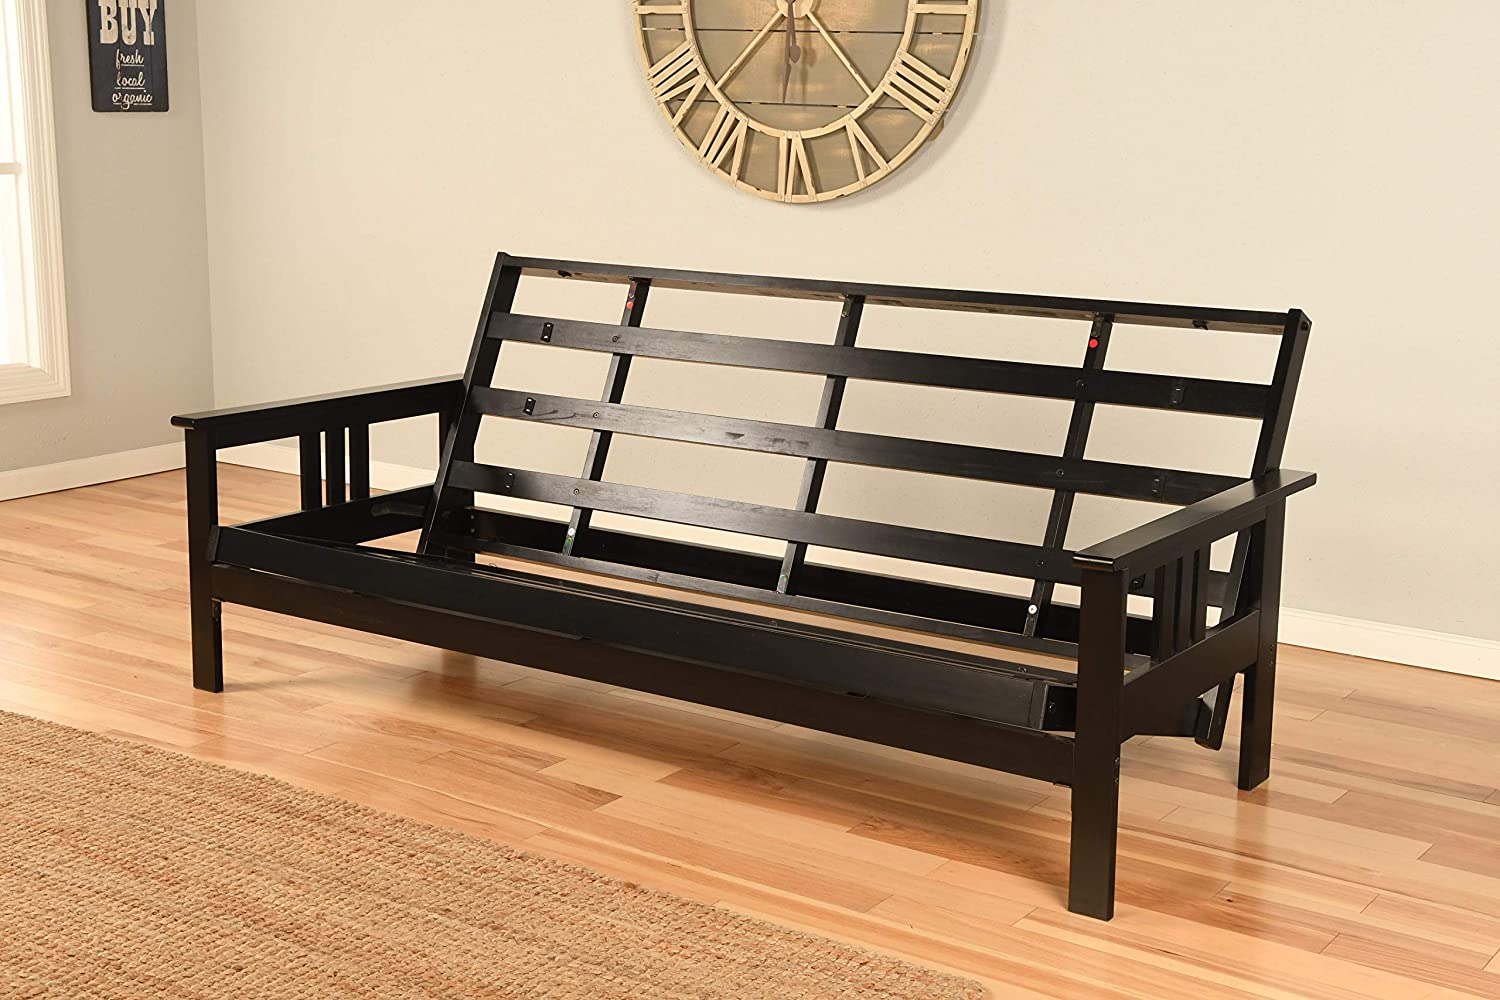 Top 10 Best Futon Frames Reviews in 2020 8